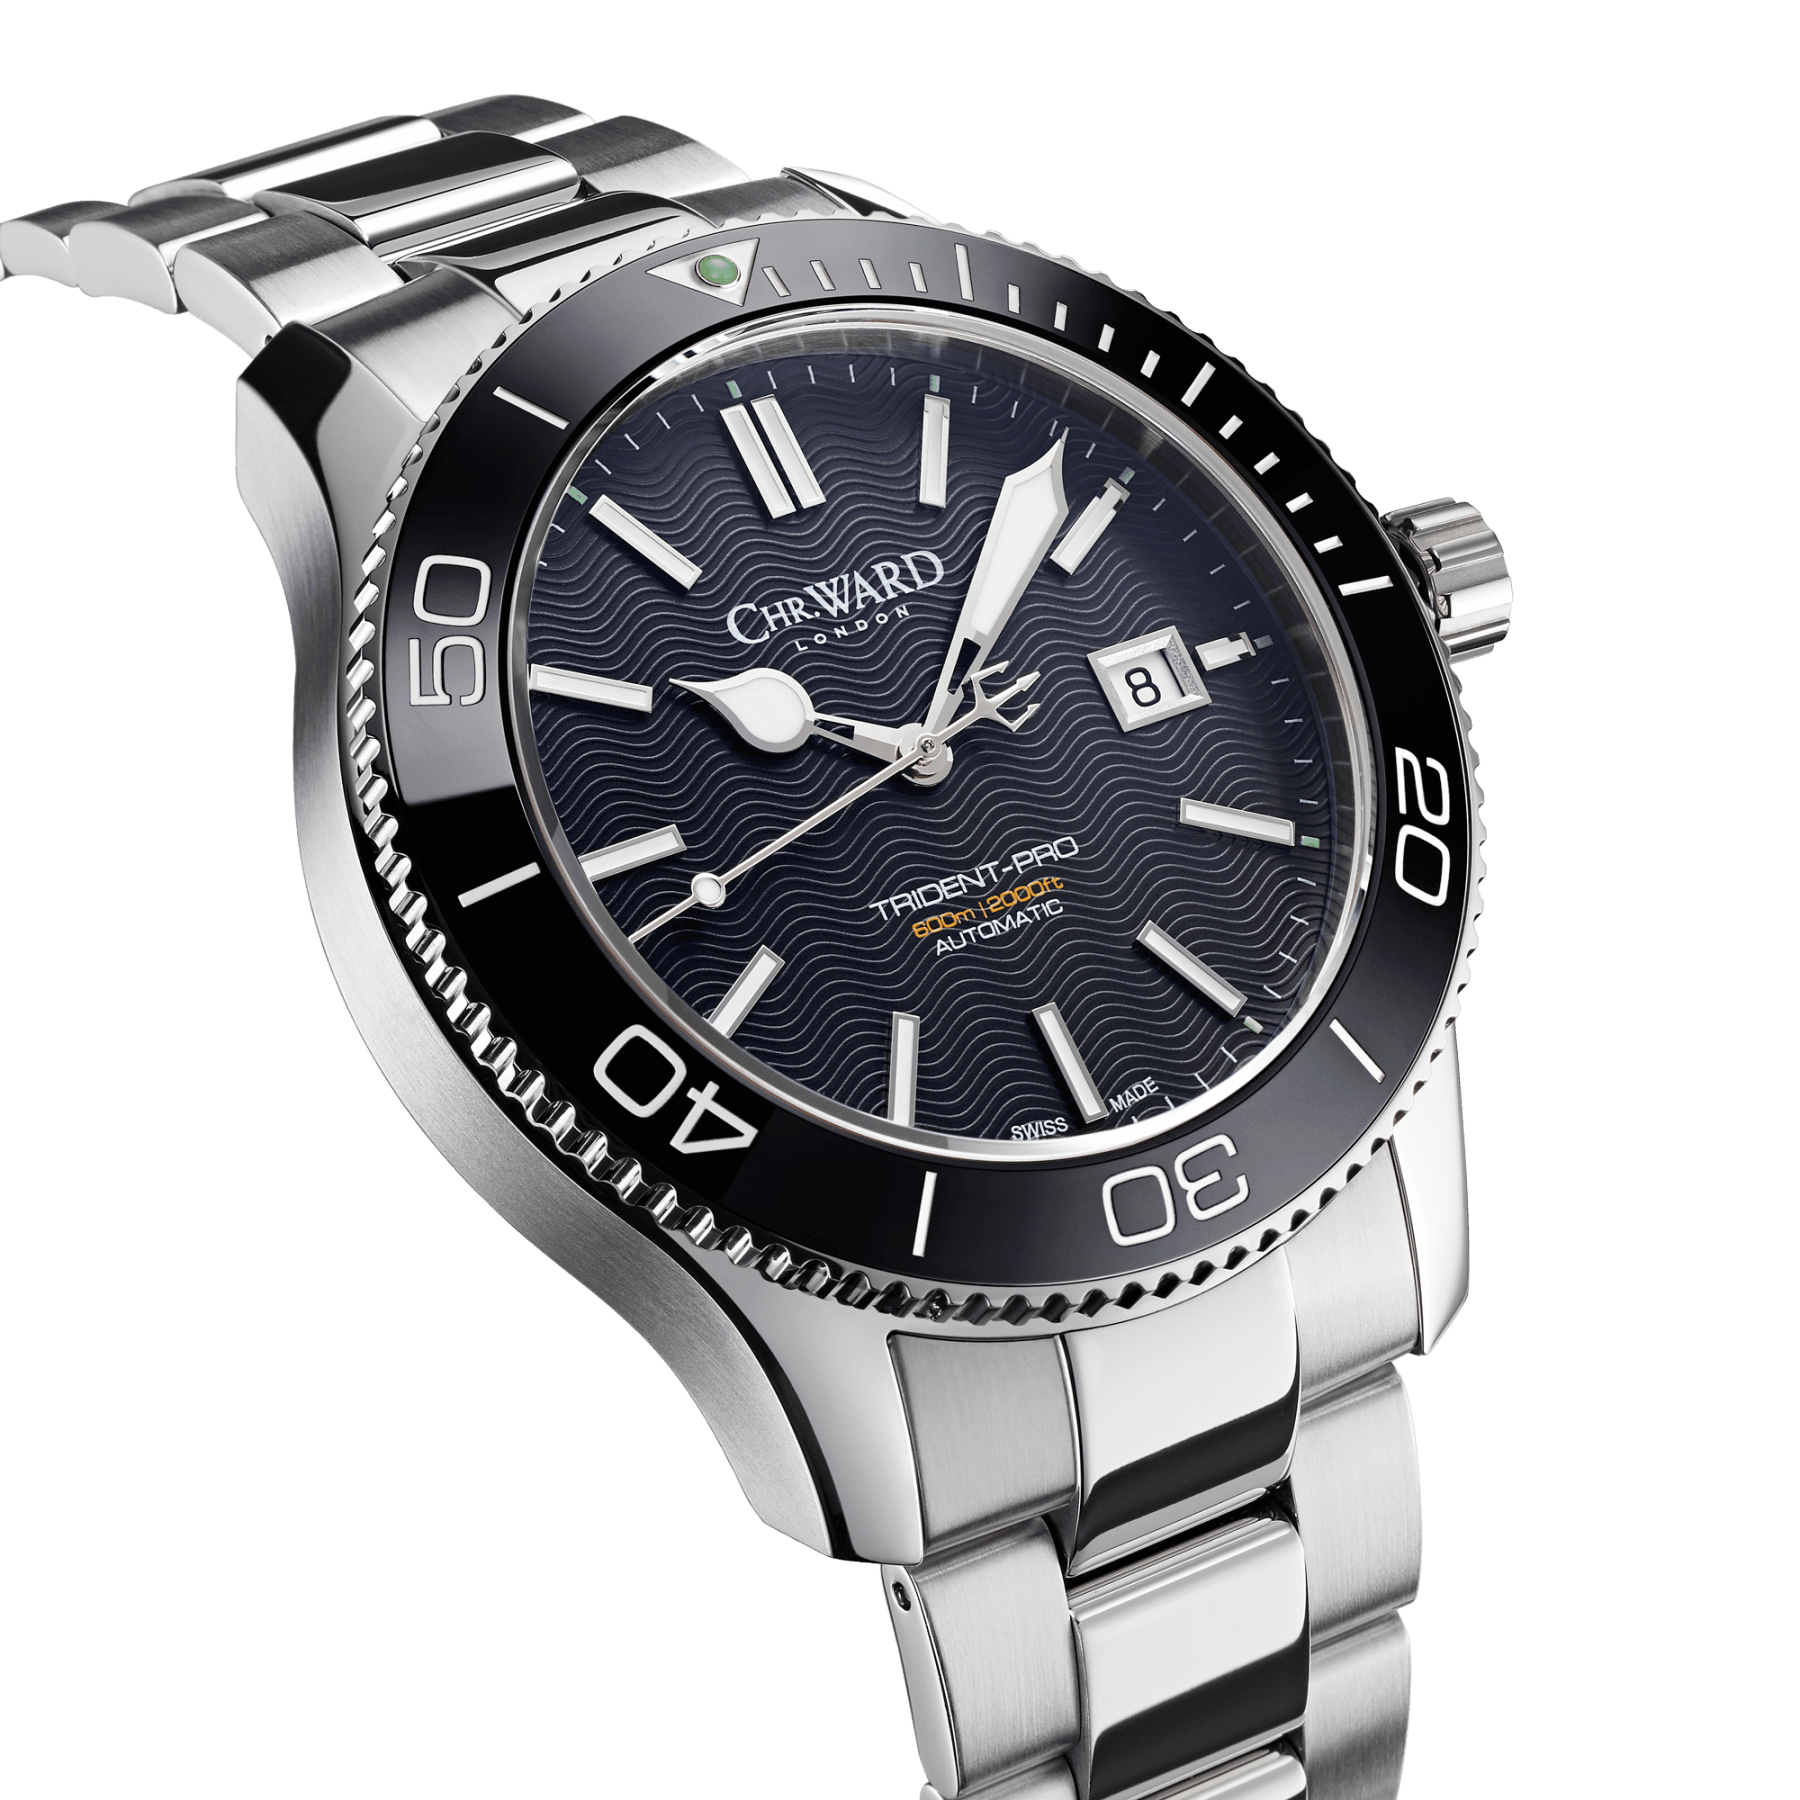 C60 Trident Pro 600 Christopher Ward Mens Watches Guide Watches For Men